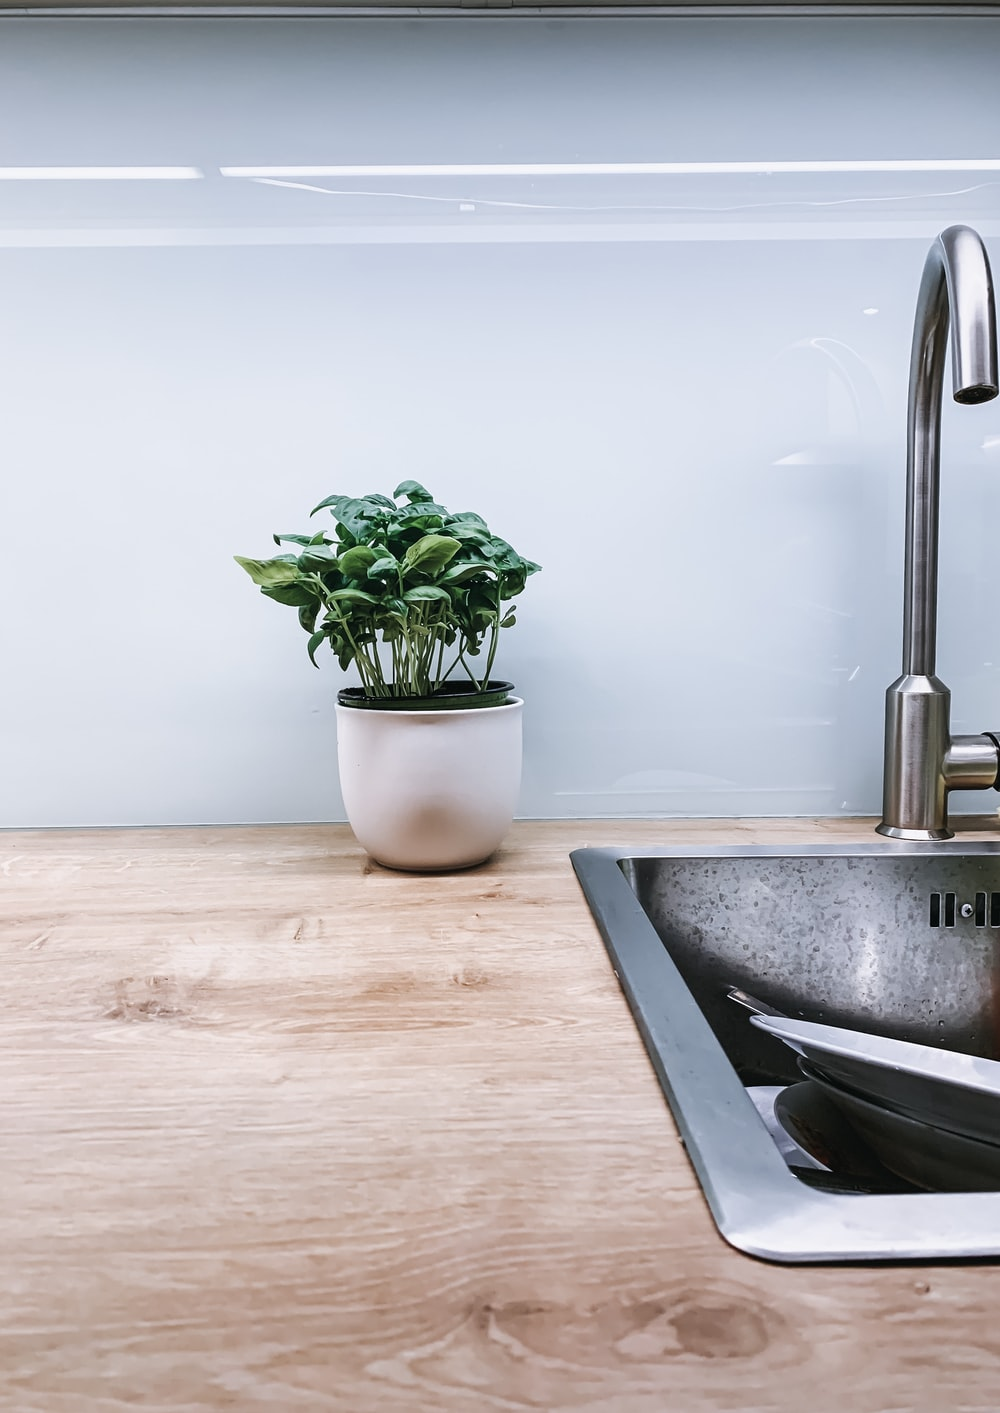 green-leafed plant beside faucet